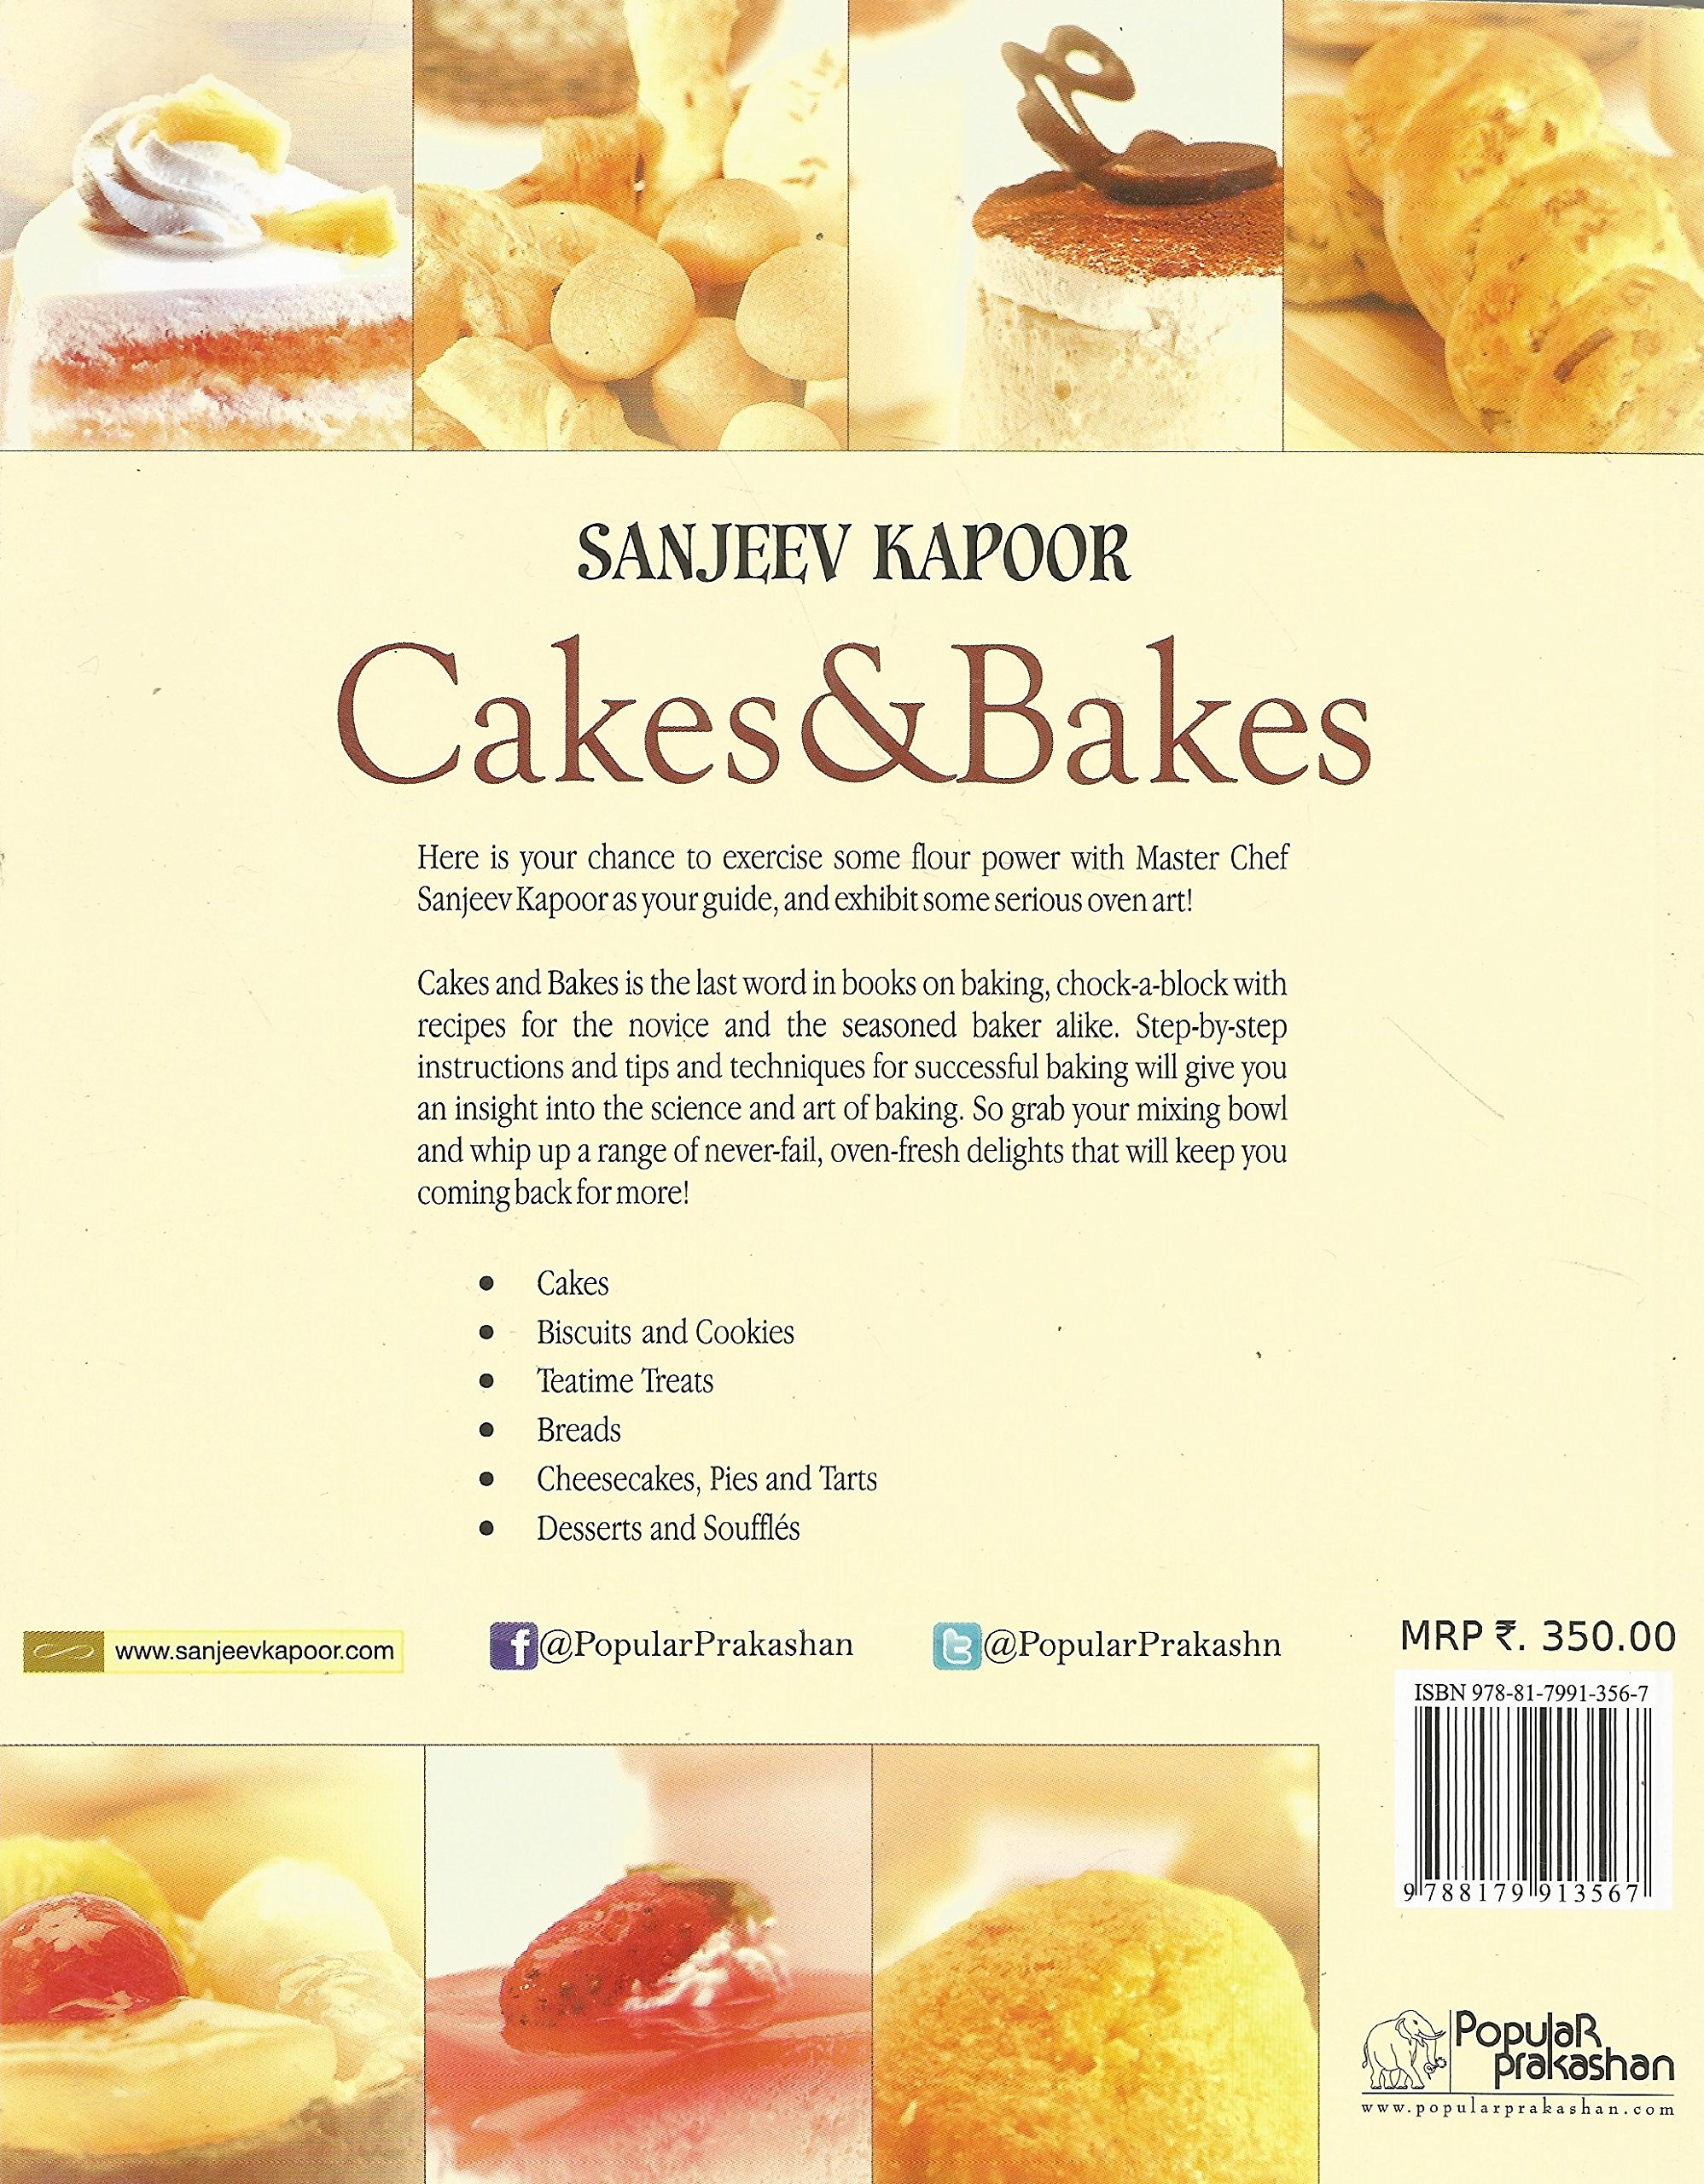 Buy Cakes and Bakes: 1 Book Online at Low Prices in India | Cakes ...